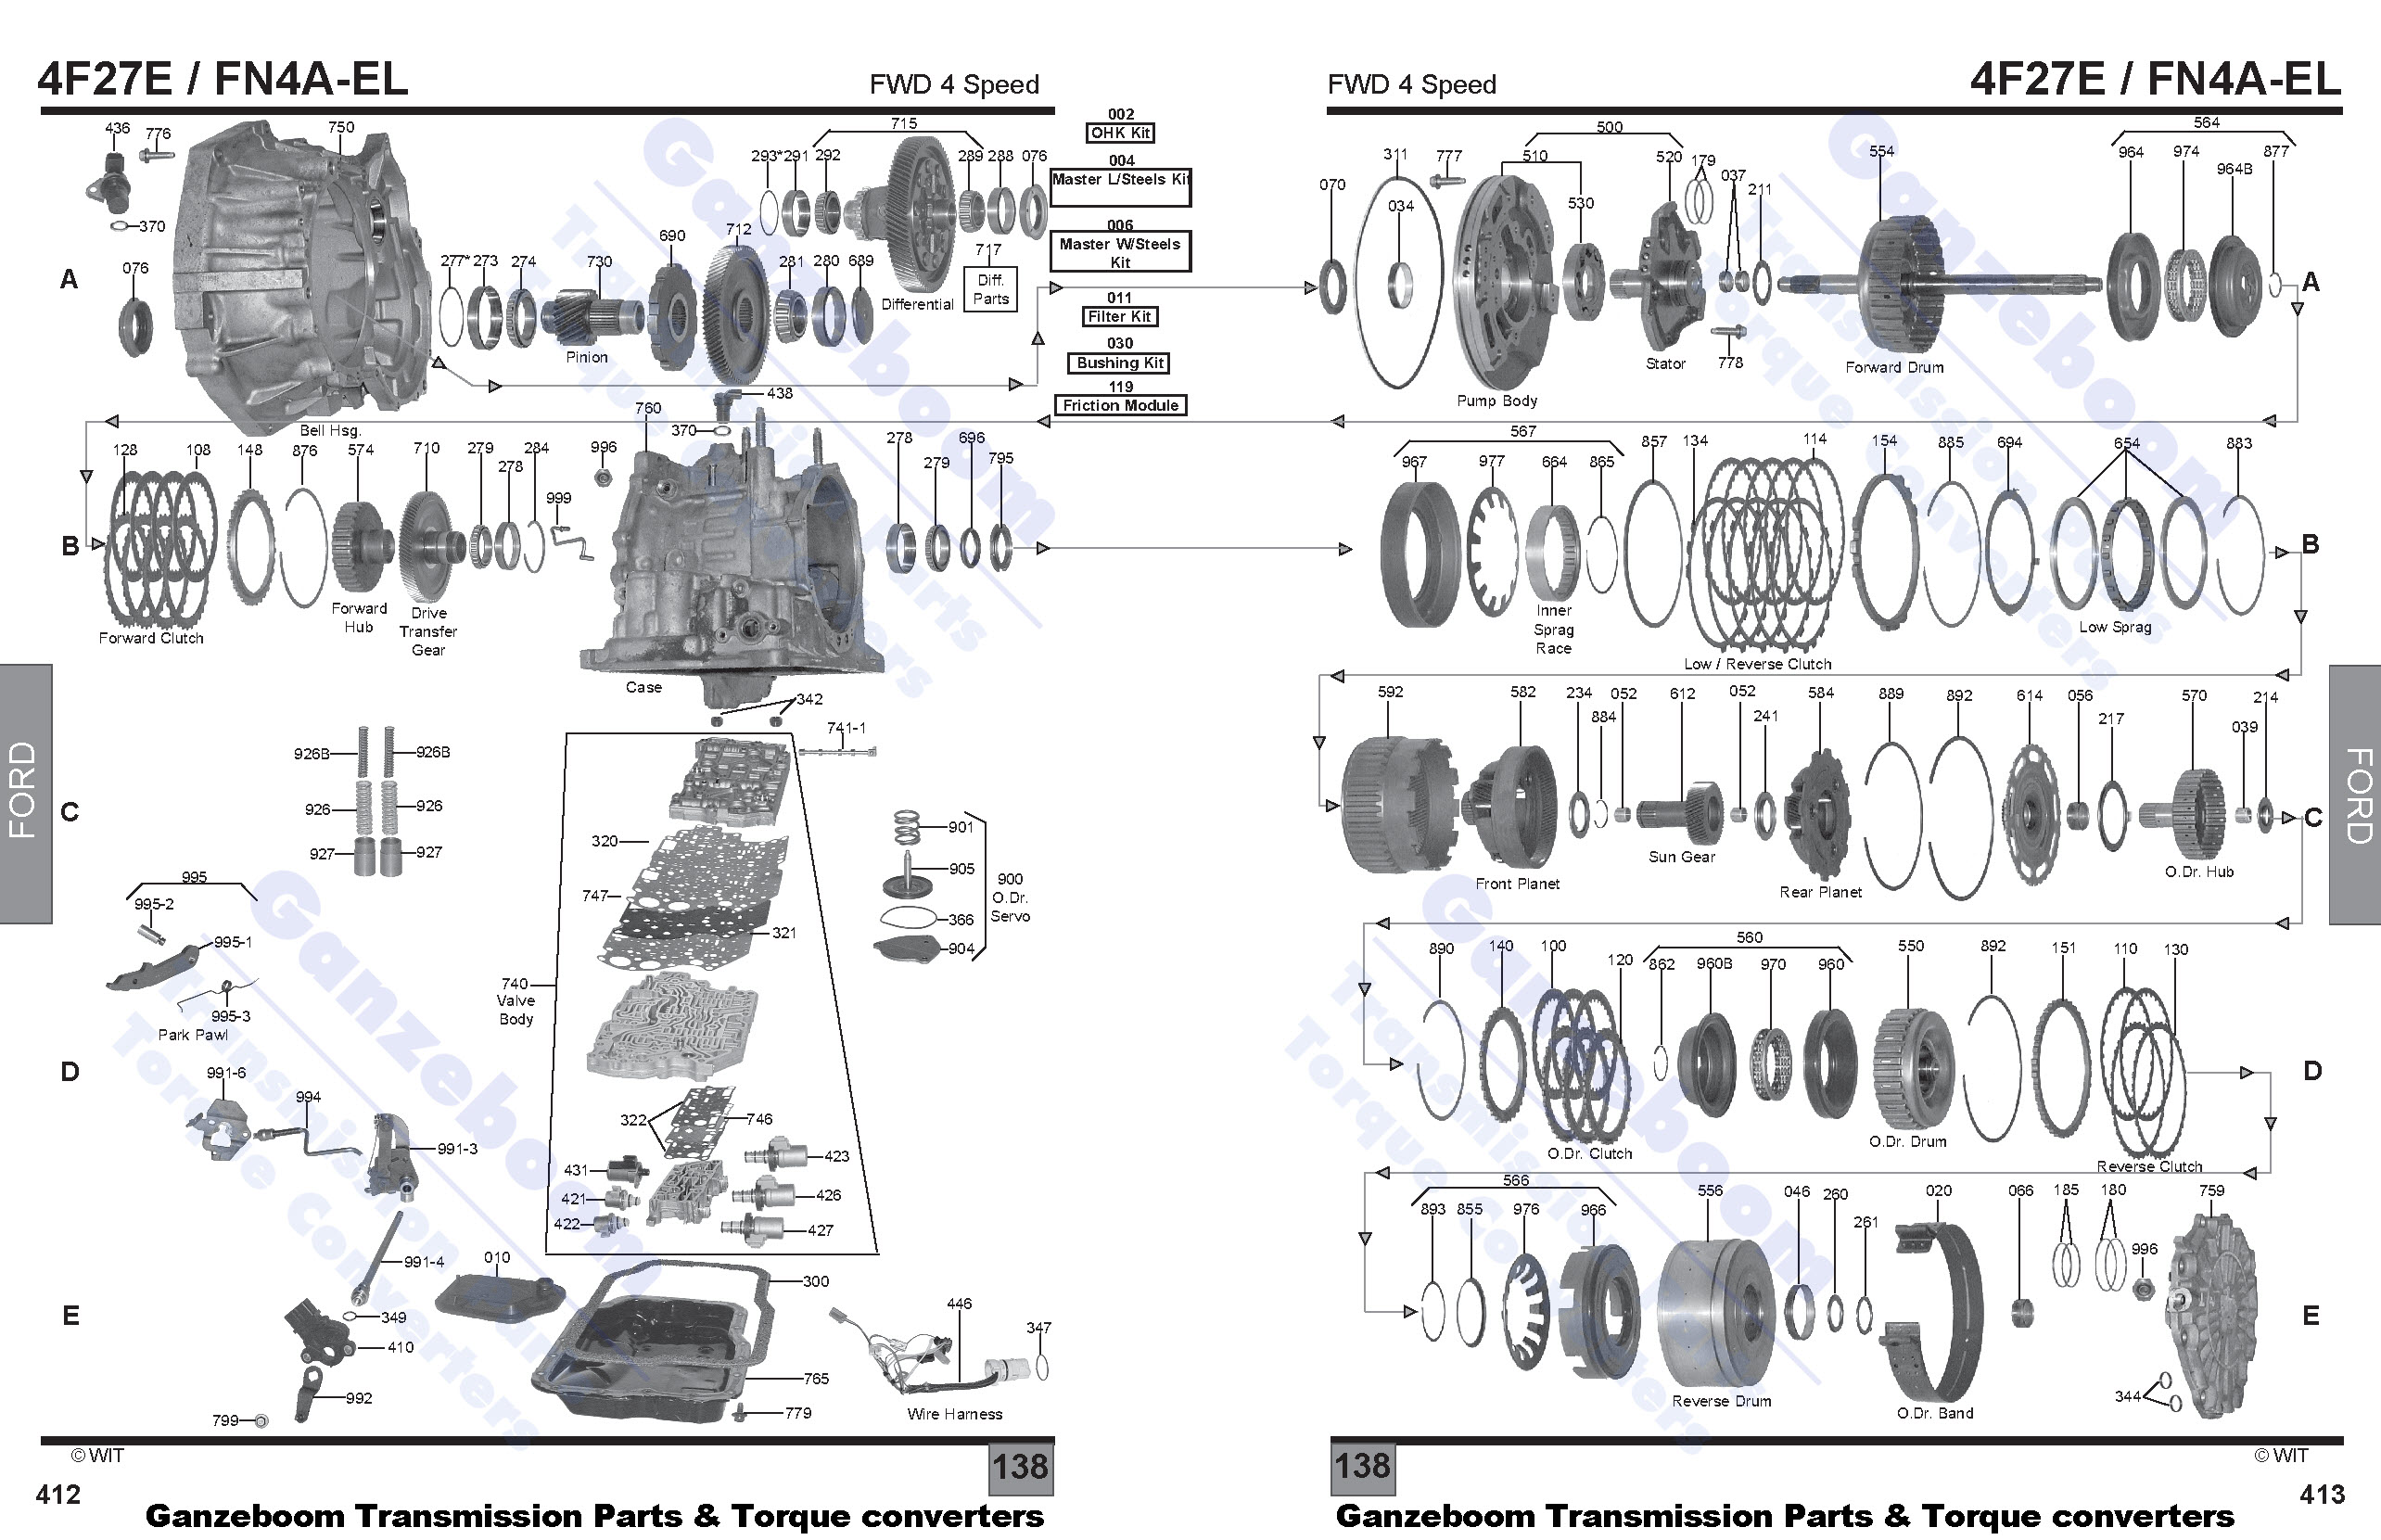 cd4e diagram trusted schematics wiring diagrams u2022 rh bestbooksrichtreasures com Ford CD4E Transmission Manual CD4E Transmission